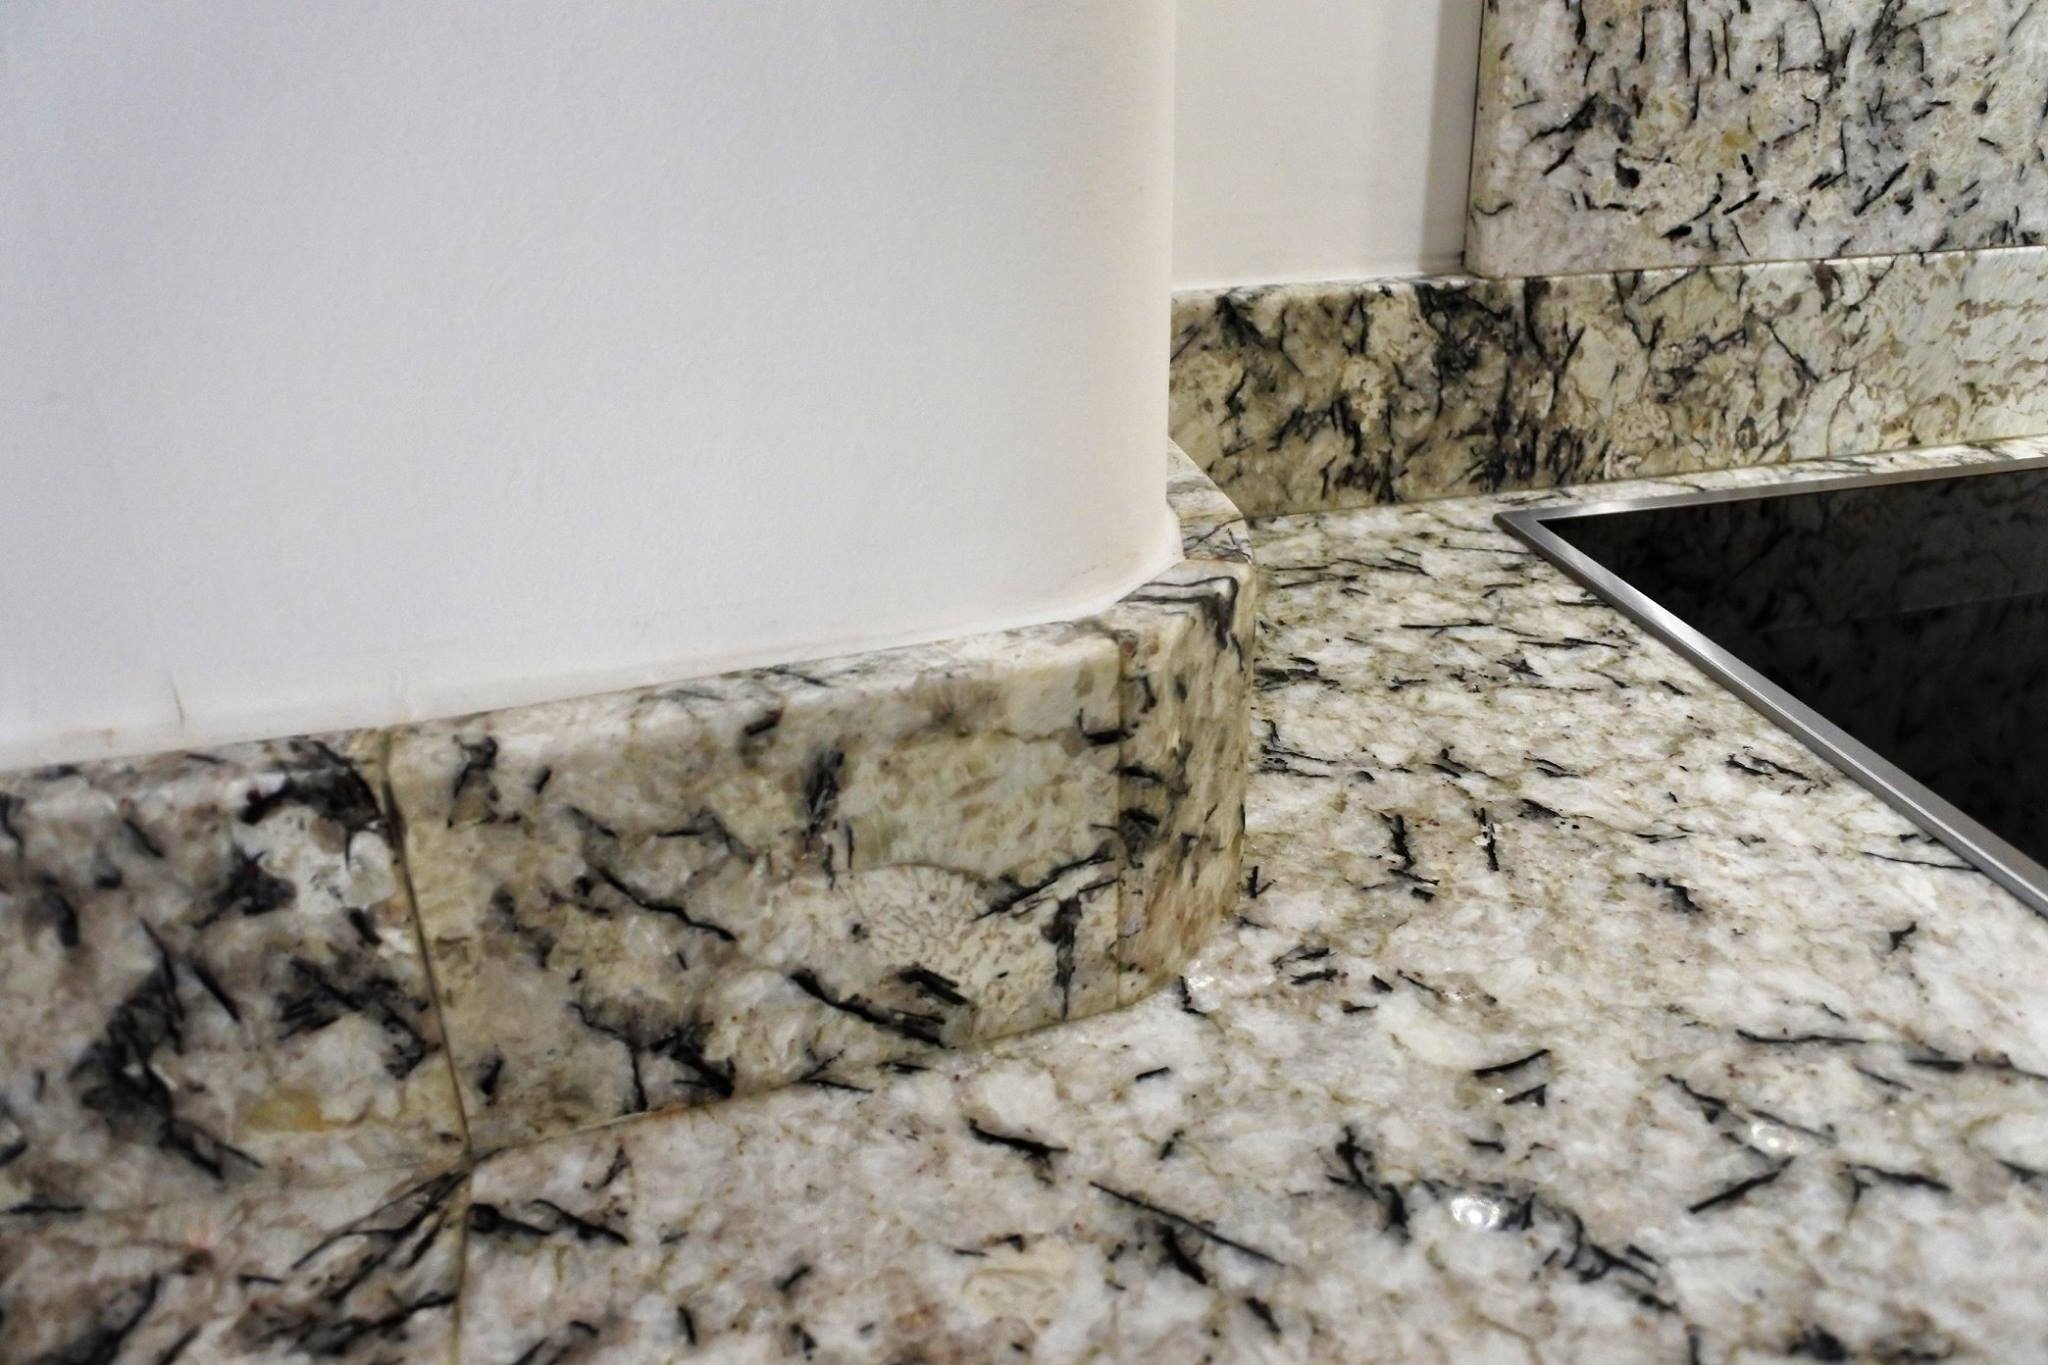 glasgow-bespoke-kitchens-granite-worksurface